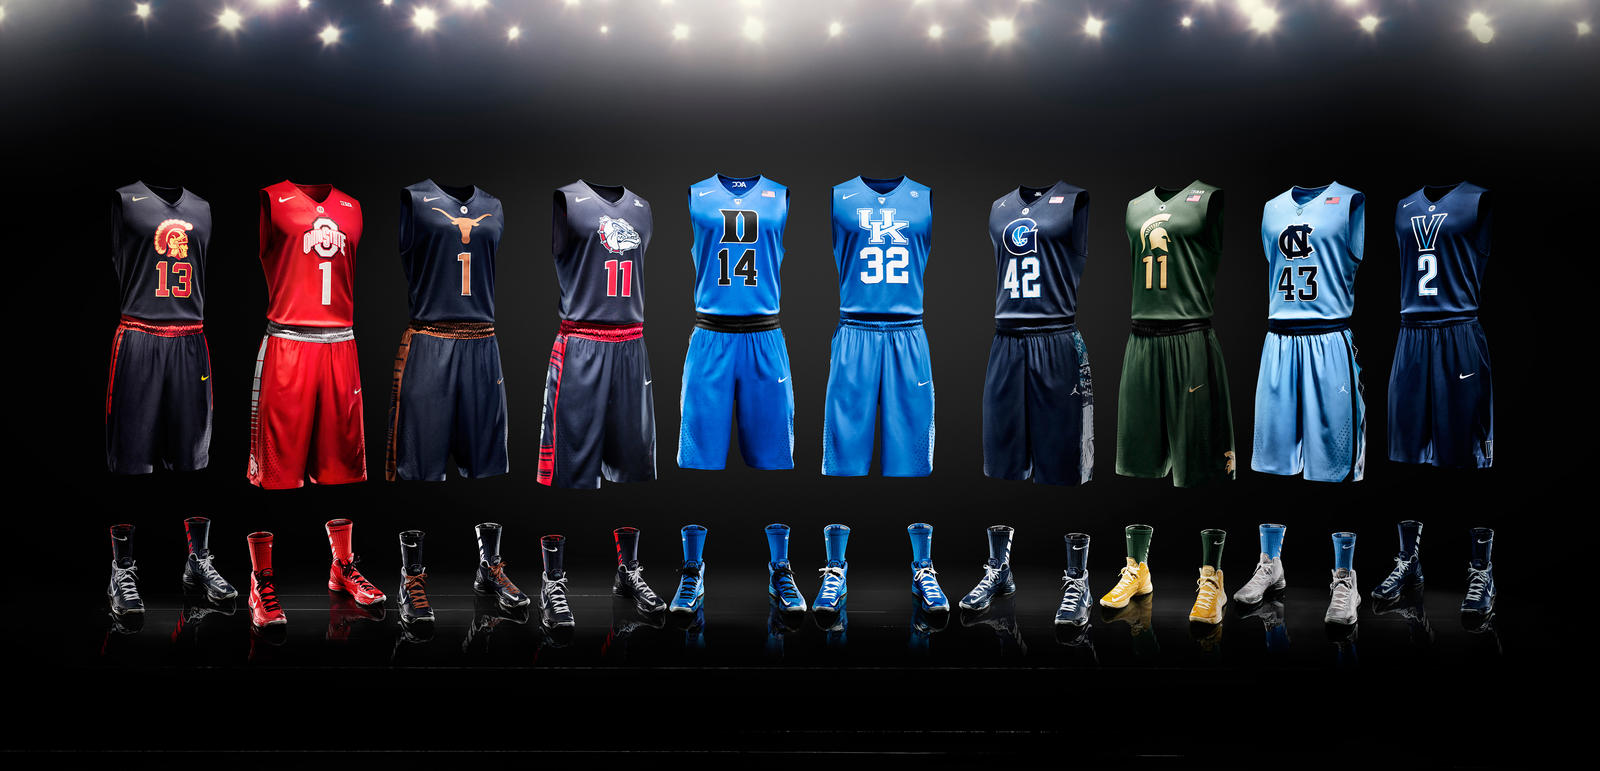 Nike Celebrates 25 Years Of Uniform Innovations also Collegedanceteam blogspot also Fun High School Wrestling Quotes furthermore 2011 Nhl All Star Jersey blue besides Dance Teams Bringing It To Kfhs. on north carolina college uniforms